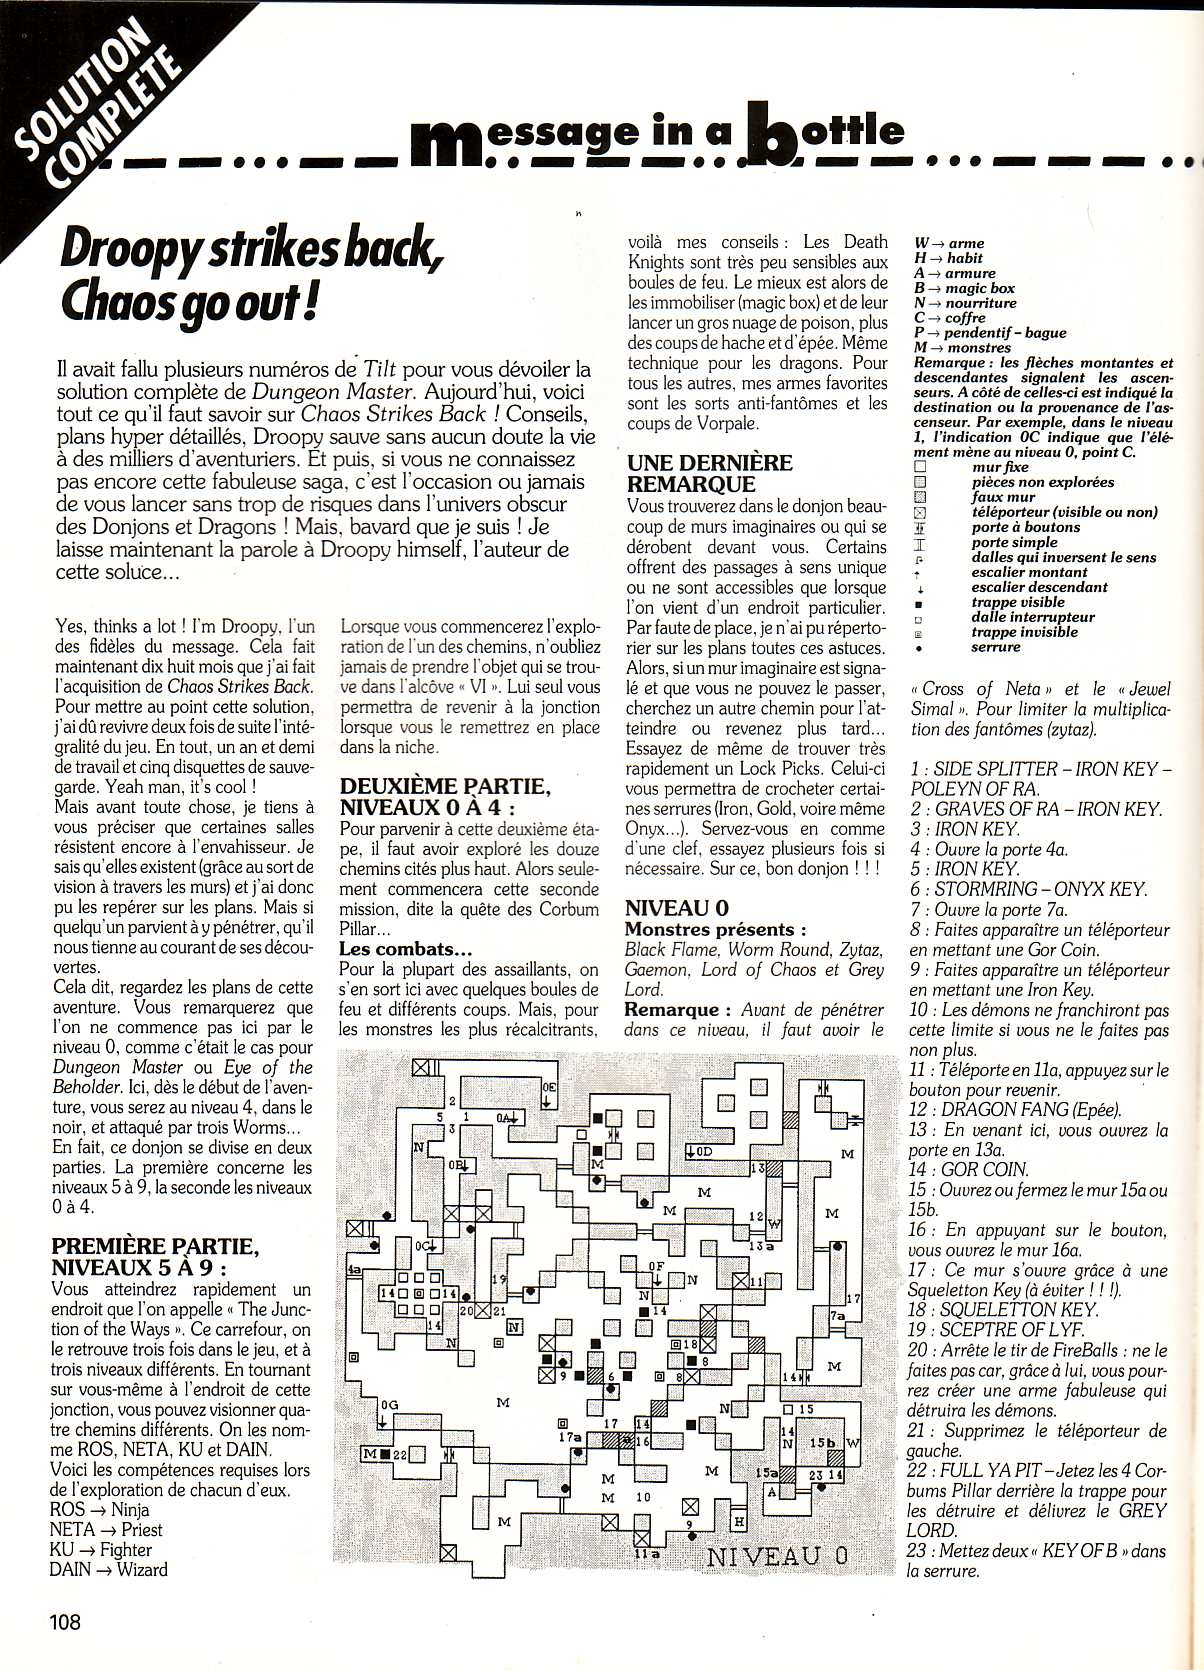 Chaos Strikes Back Guide published in French magazine 'Tilt', Issue #99, February 1992, Page 108